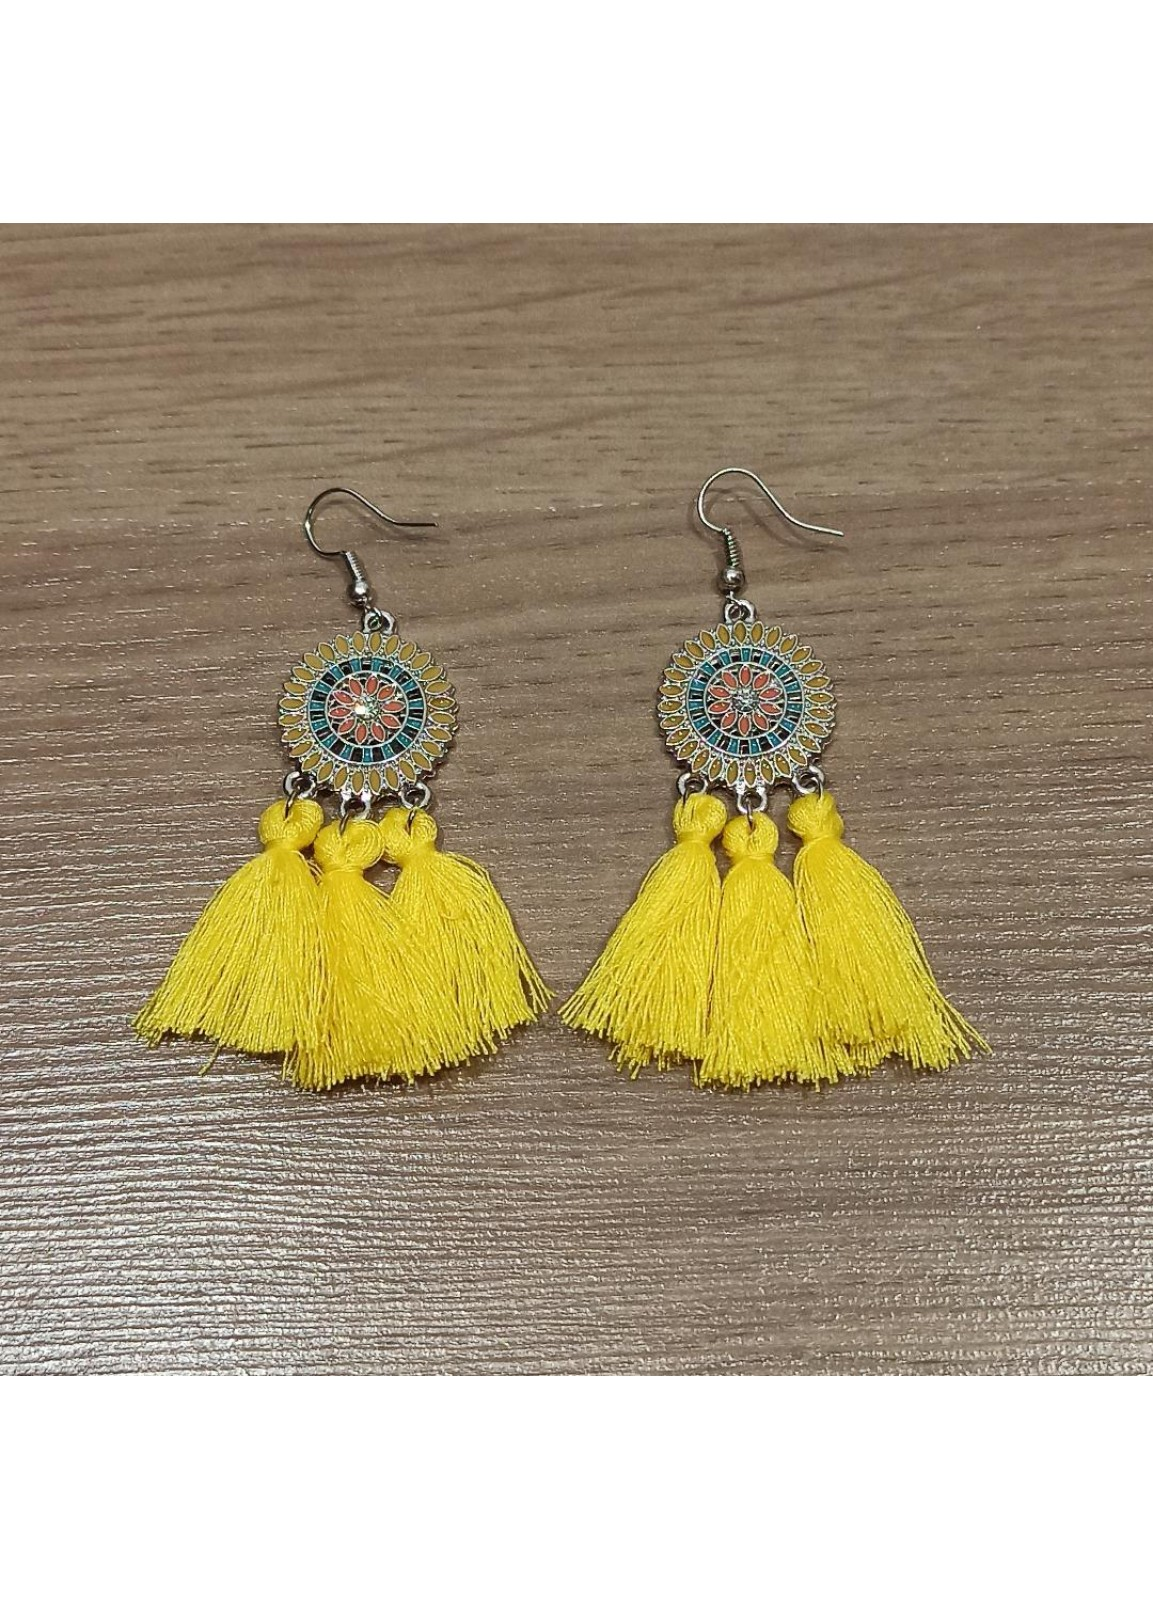 Summer Dream earrings